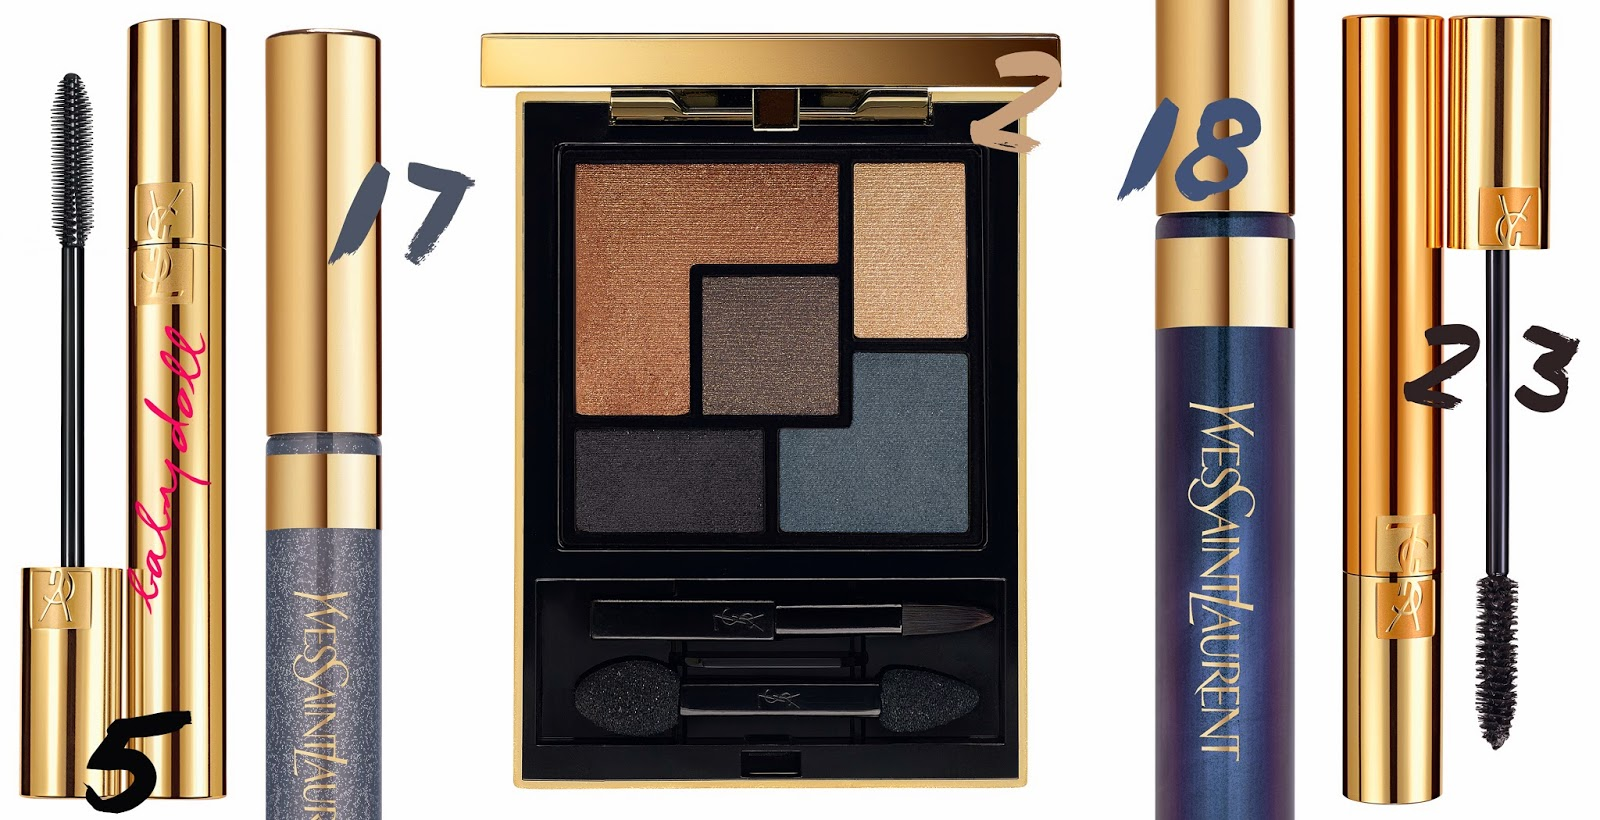 YSL, Yves Saint Laurent, Cuirs Fétiches, Couture Palette Collector Fetiche, Mascara Volume Effet Faux Cils, Baby Doll, Eyeliner Baby Doll,